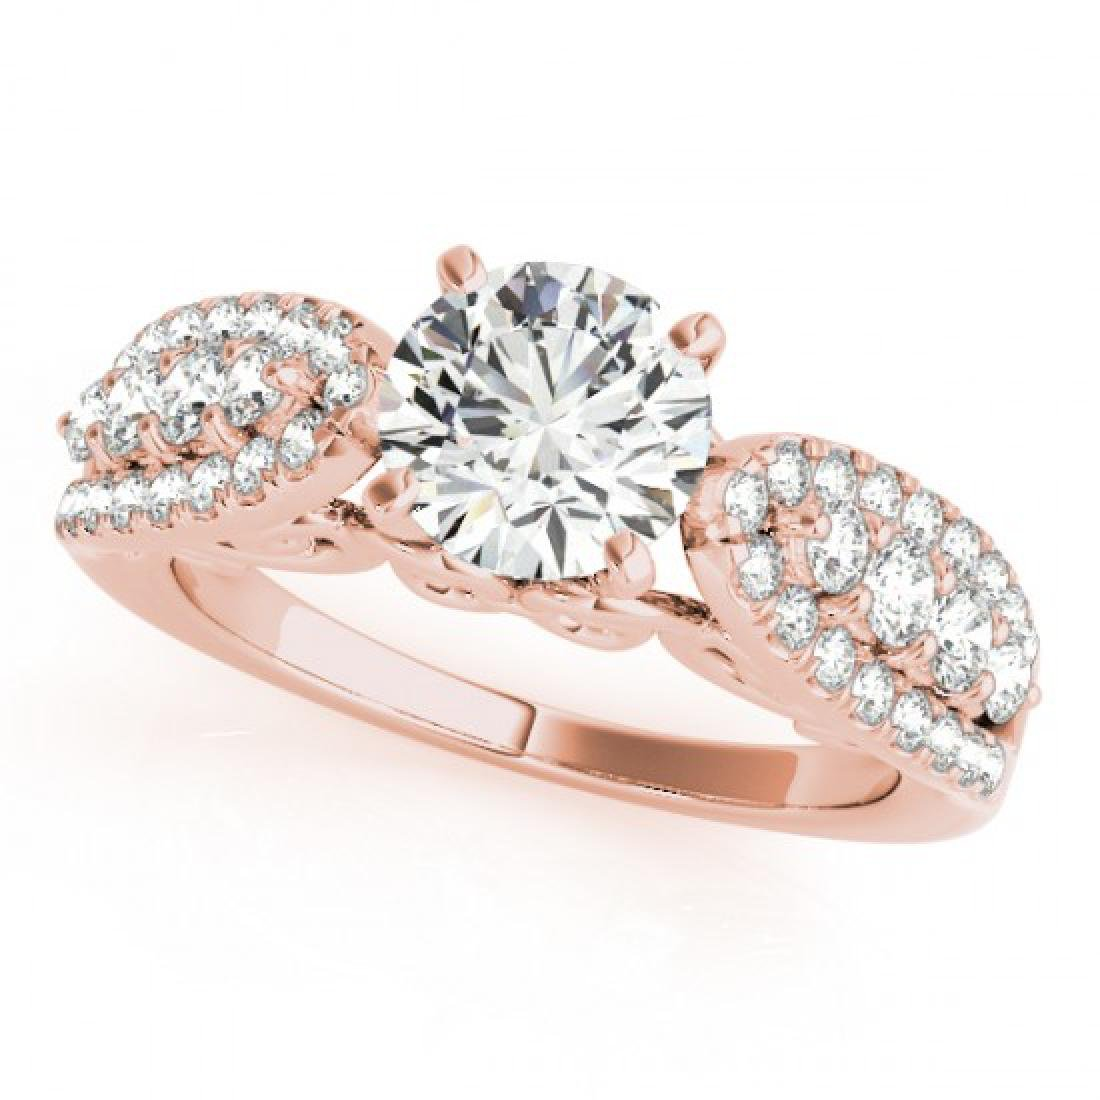 2 CTW Certified VS/SI Diamond Solitaire Ring 14K Rose